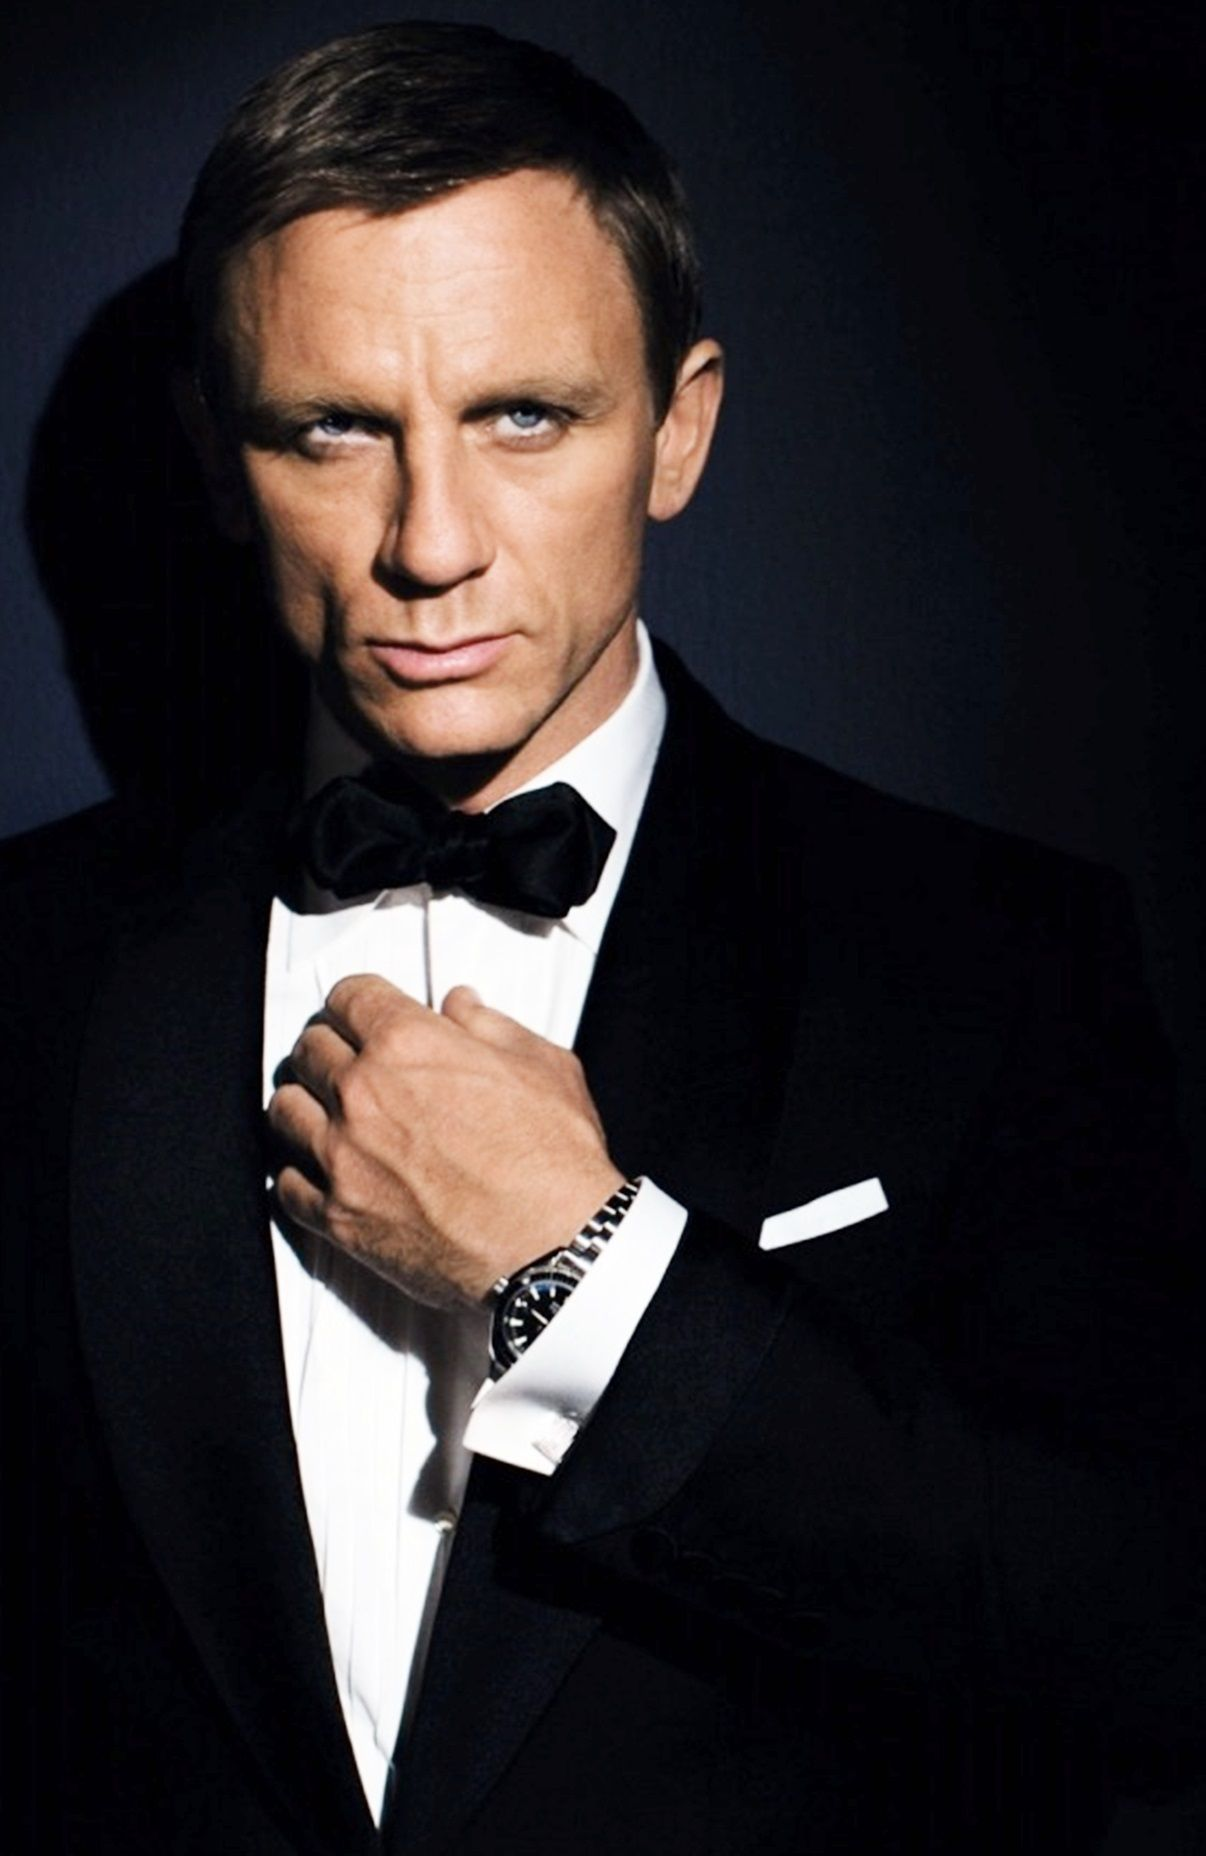 photo Daniel Craig (born 1968)